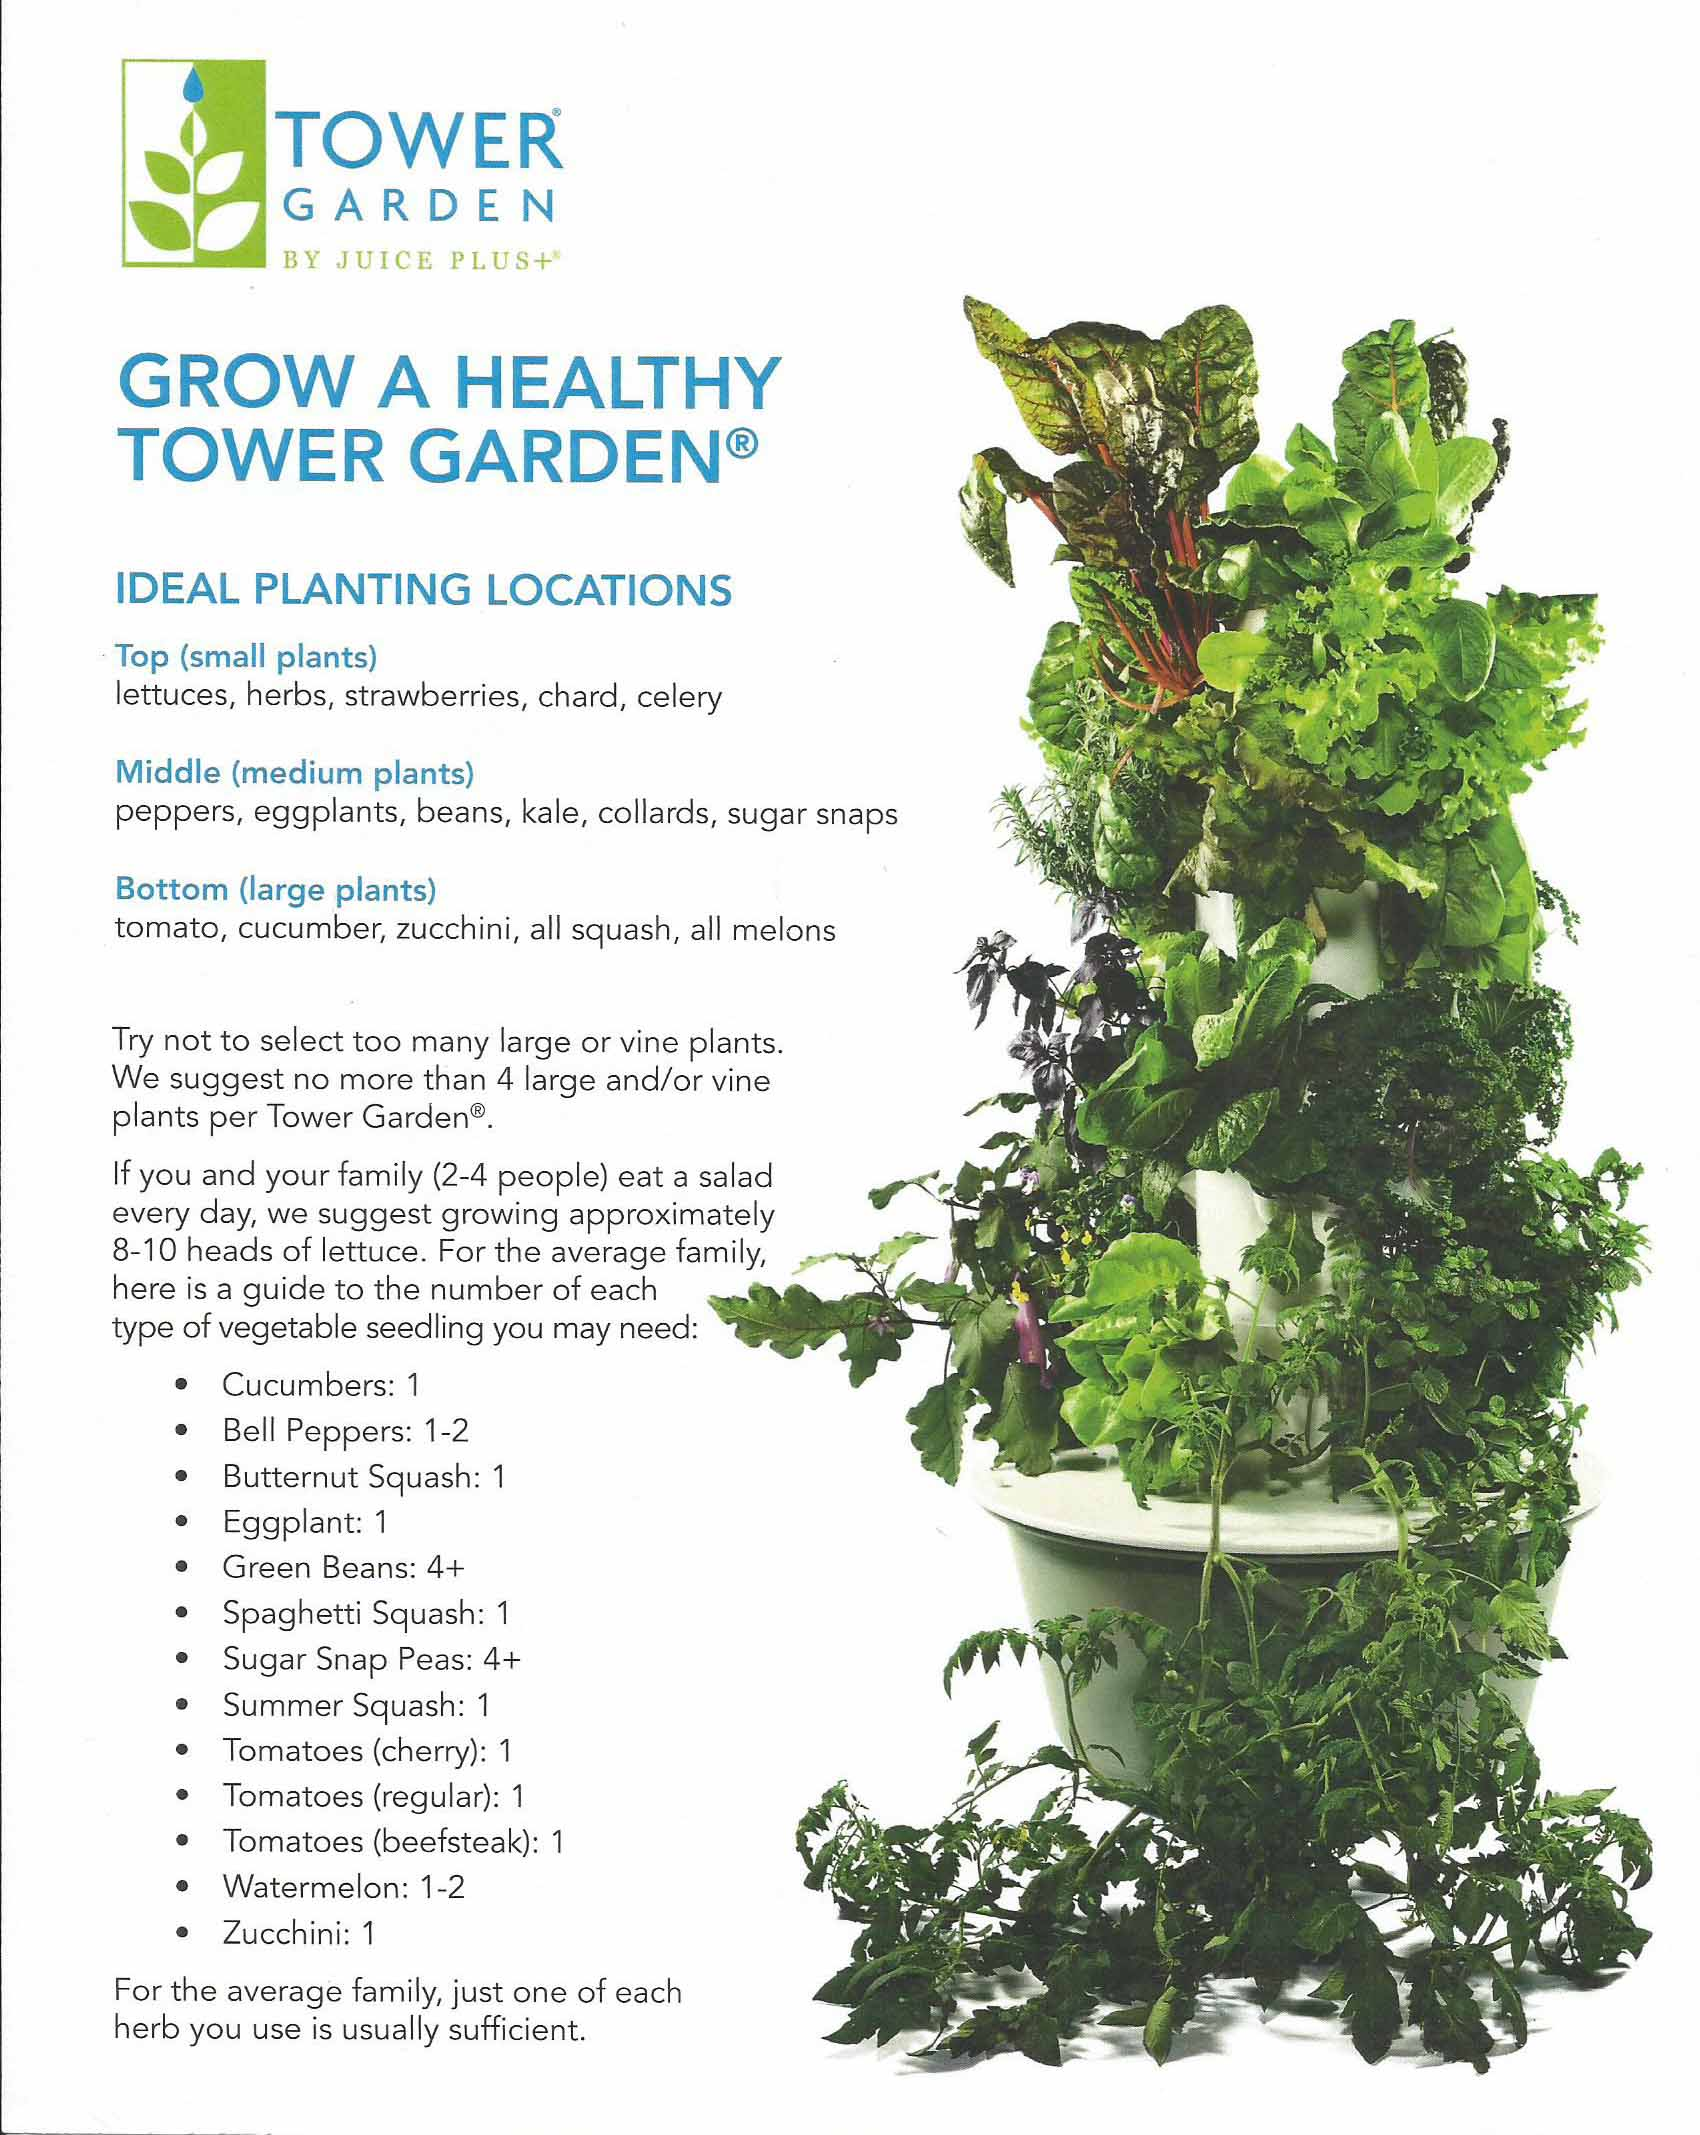 Good How To Grow At Healthy Tower Garden Vertical Urban Gardening Awesome Ideas